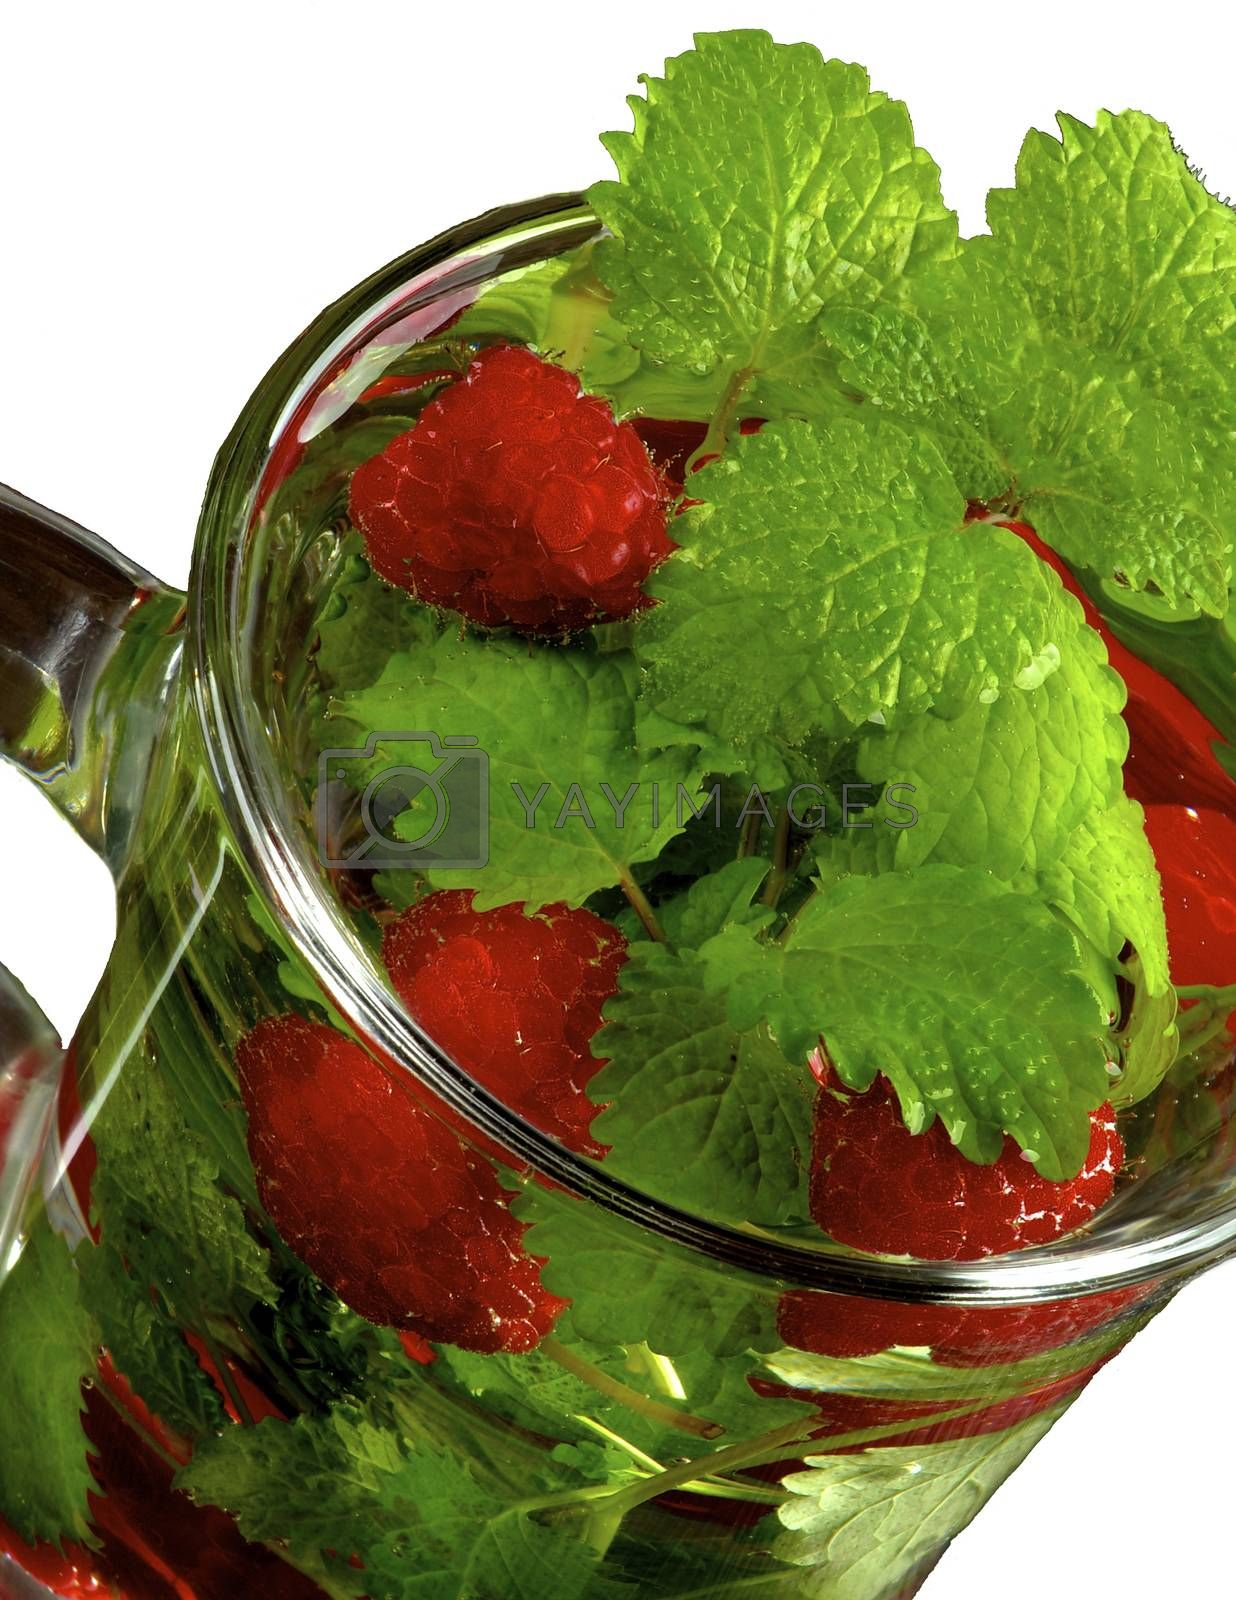 Raspberry Beverage with Perfect Fresh Lemon-Balm Leafs in Glass Cup on White background